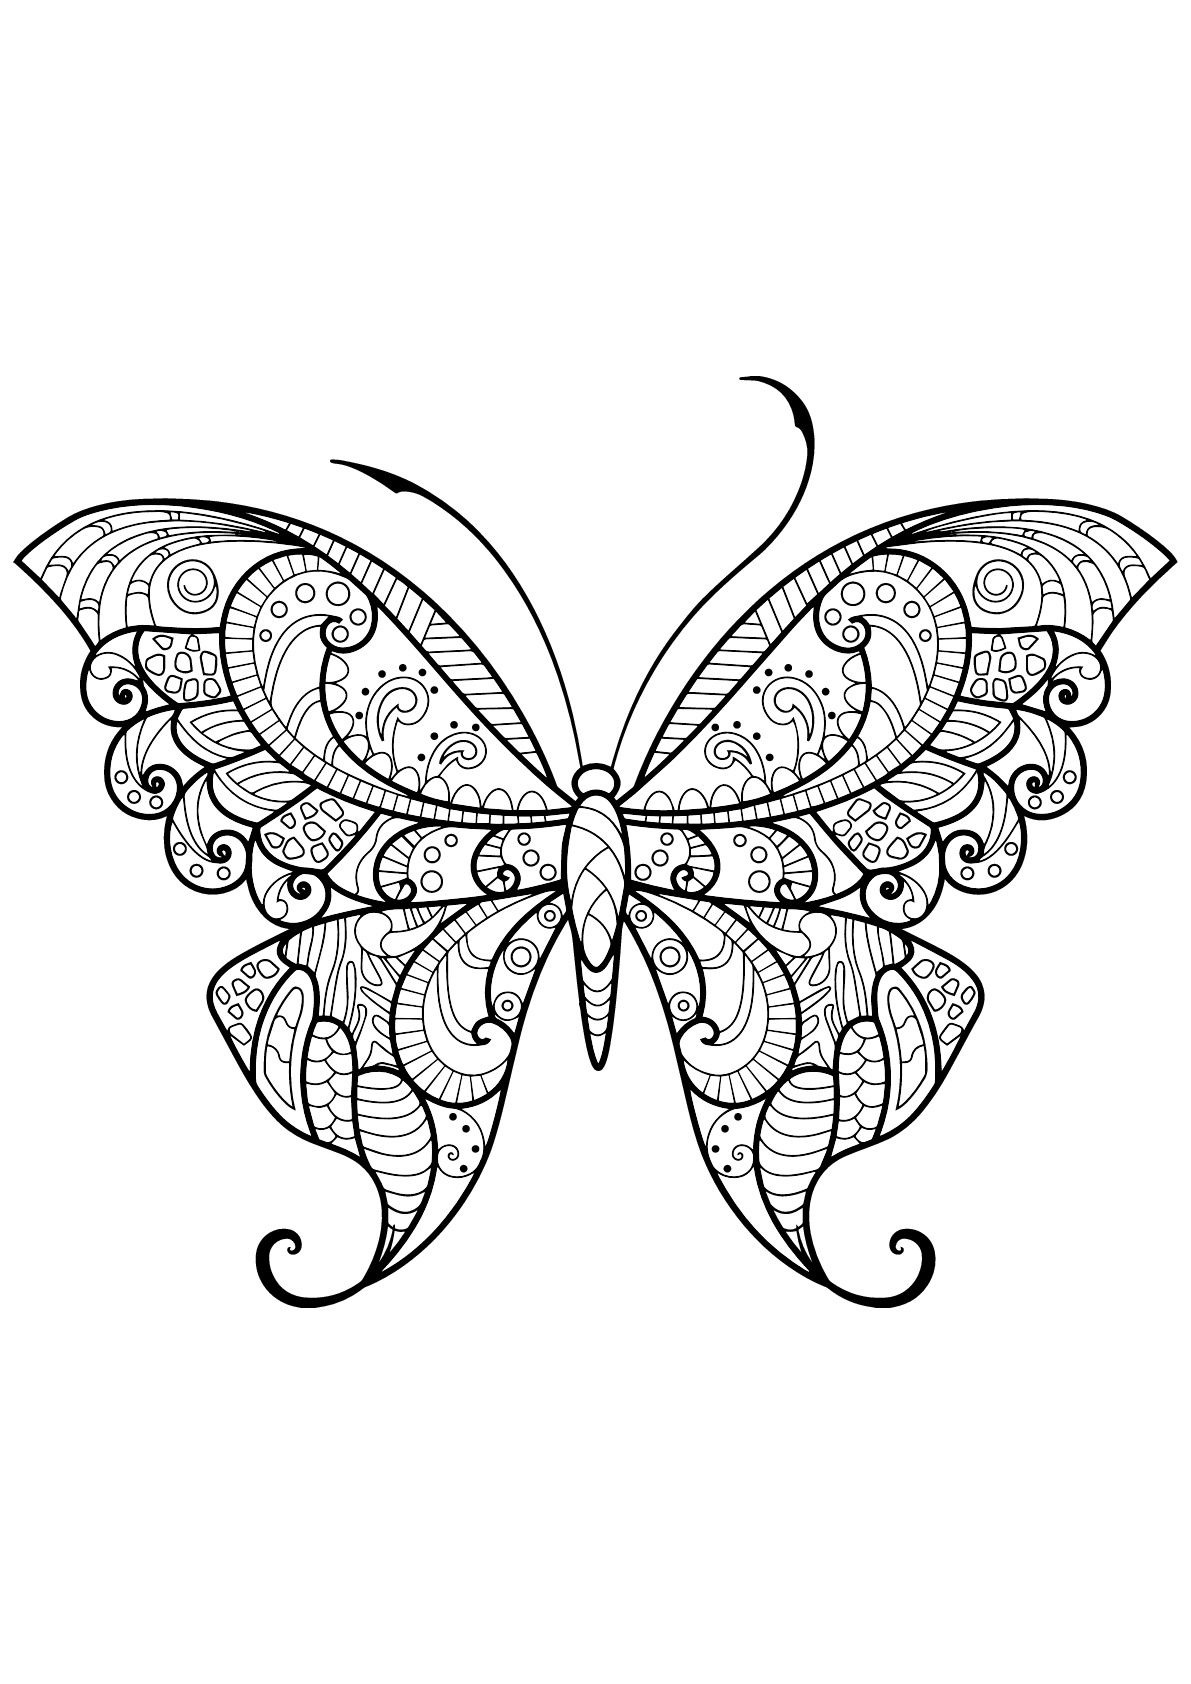 Butterfly Beautiful Patterns 12 Butterfly With Beautiful Patterns 12 From The Gallery Butterfly Coloring Page Insect Coloring Pages Mandala Coloring Pages